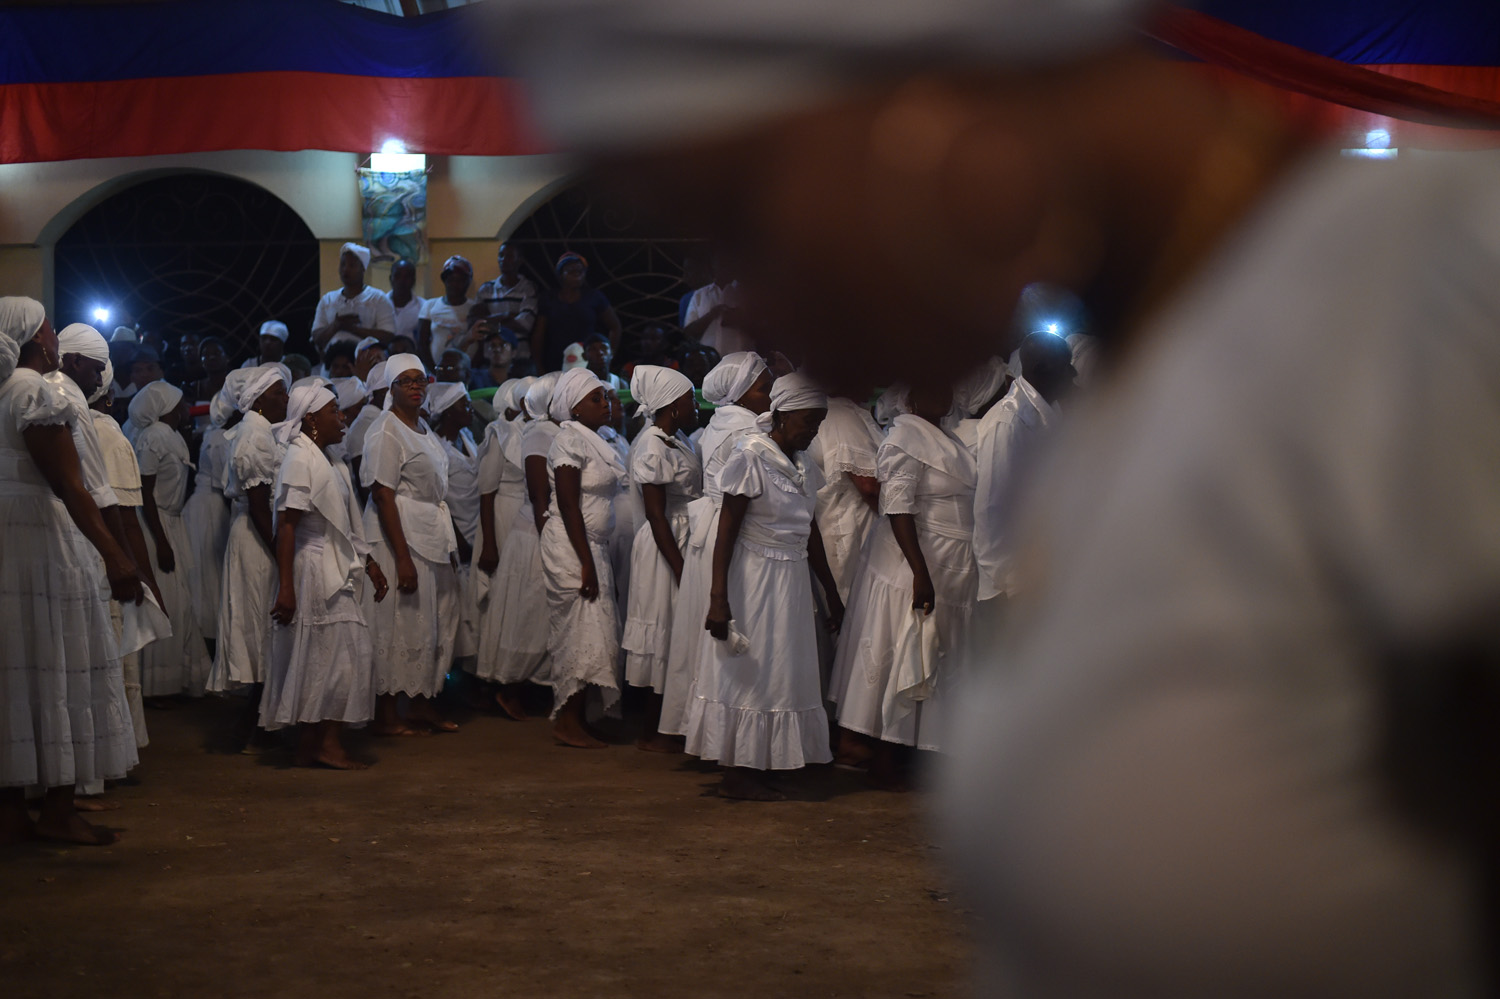 Haitian voodoo followers wearing white clothes dance while participating in a voodoo ceremony in Souvenance, a suburb of Gonaives, 171km north of Port-au-Prince, on March 31, 2018. Haitian voodoo followers arrived in Souvenance to take part in the voodoo ceremonies held during Easter weekend. / AFP PHOTO / Hector RETAMAL